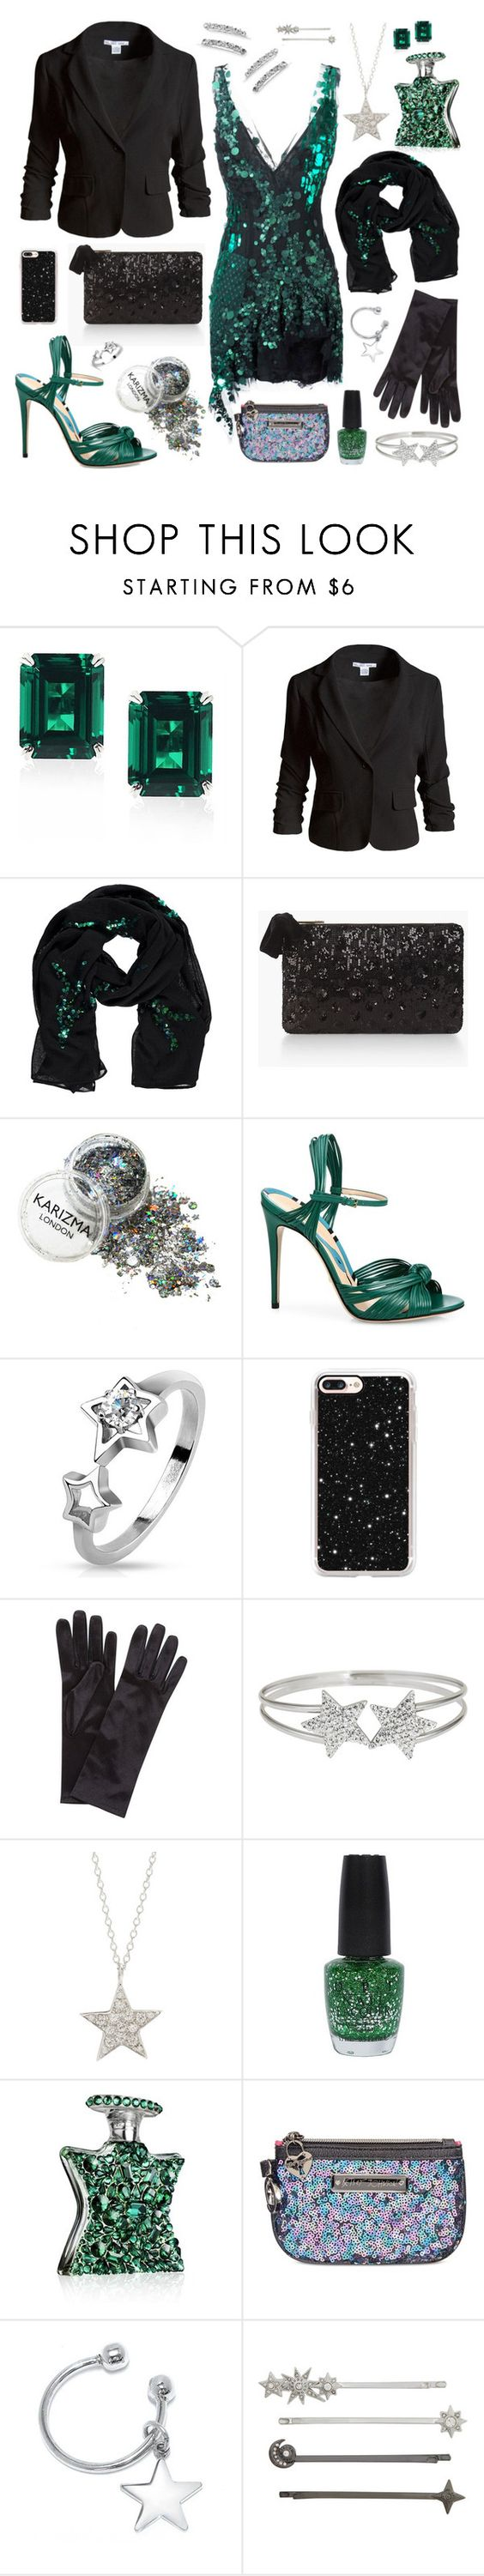 """""""Emerald Party Look"""" by inspiredsara ❤ liked on Polyvore featuring Sans Souci, Talbots, Gucci, West Coast Jewelry, Casetify, John Lewis, Decadence, Finn, OPI and Bond No. 9"""